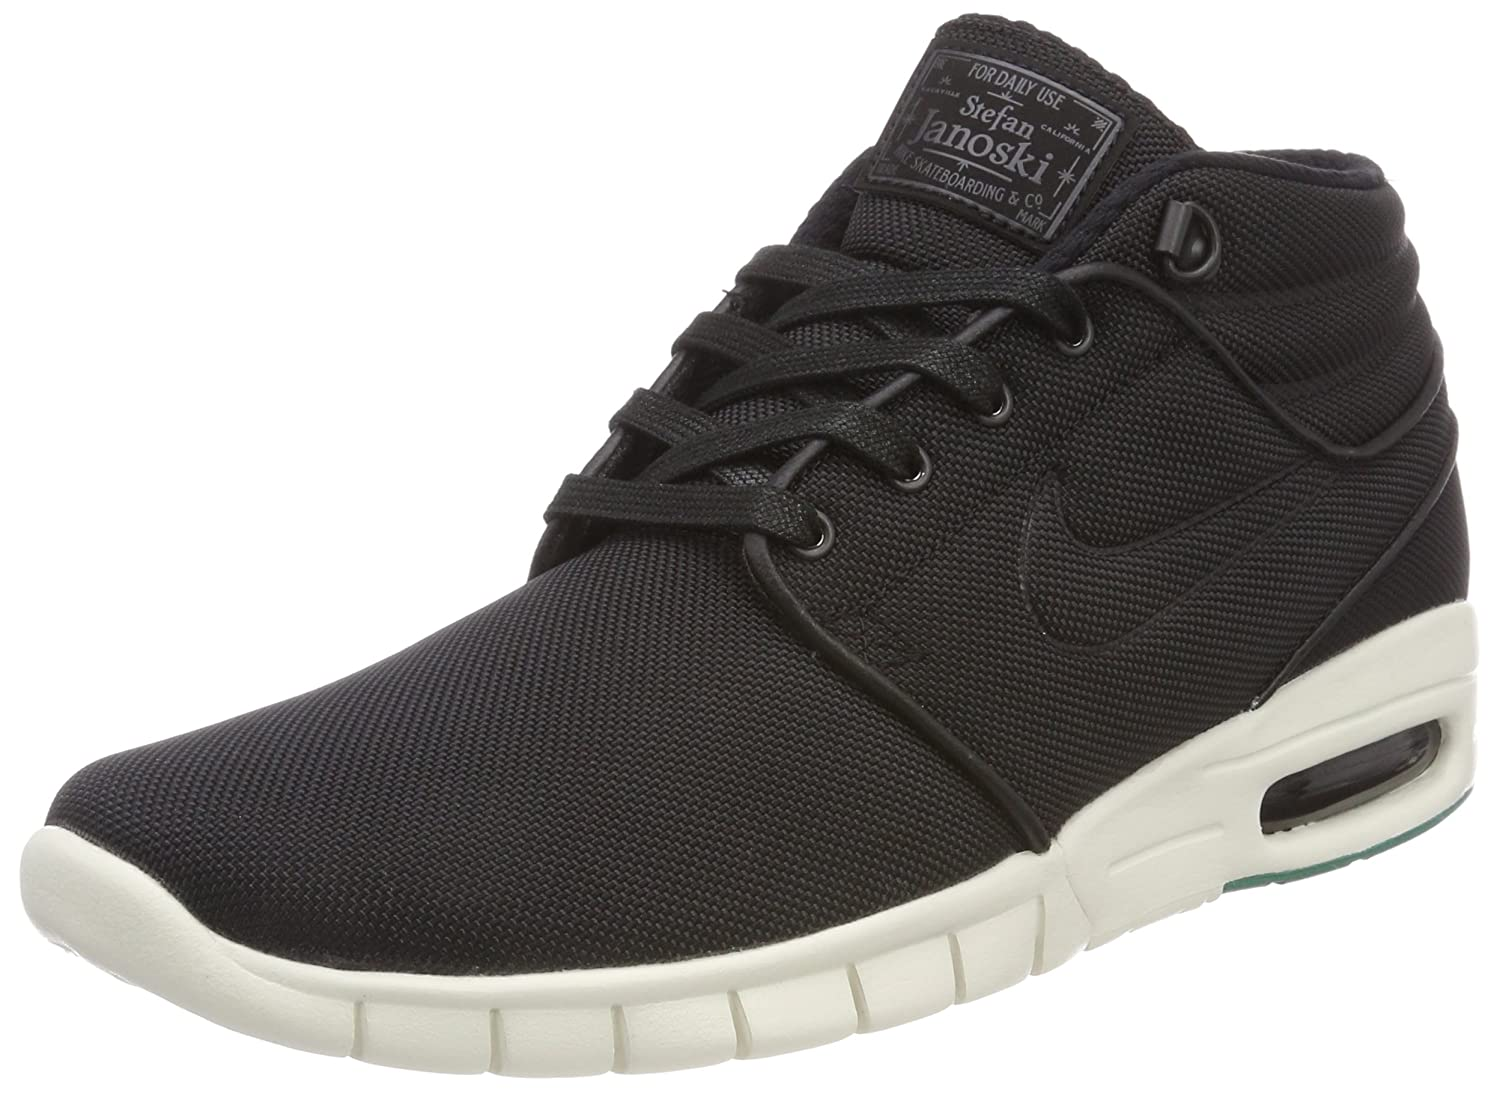 d5f5b1c6276 Nike Stefan Janoski Max Mid Mens Fashion-Sneakers 807507-003 11 - Black  Black-Neptune Green-Anthracite  Buy Online at Low Prices in India -  Amazon.in